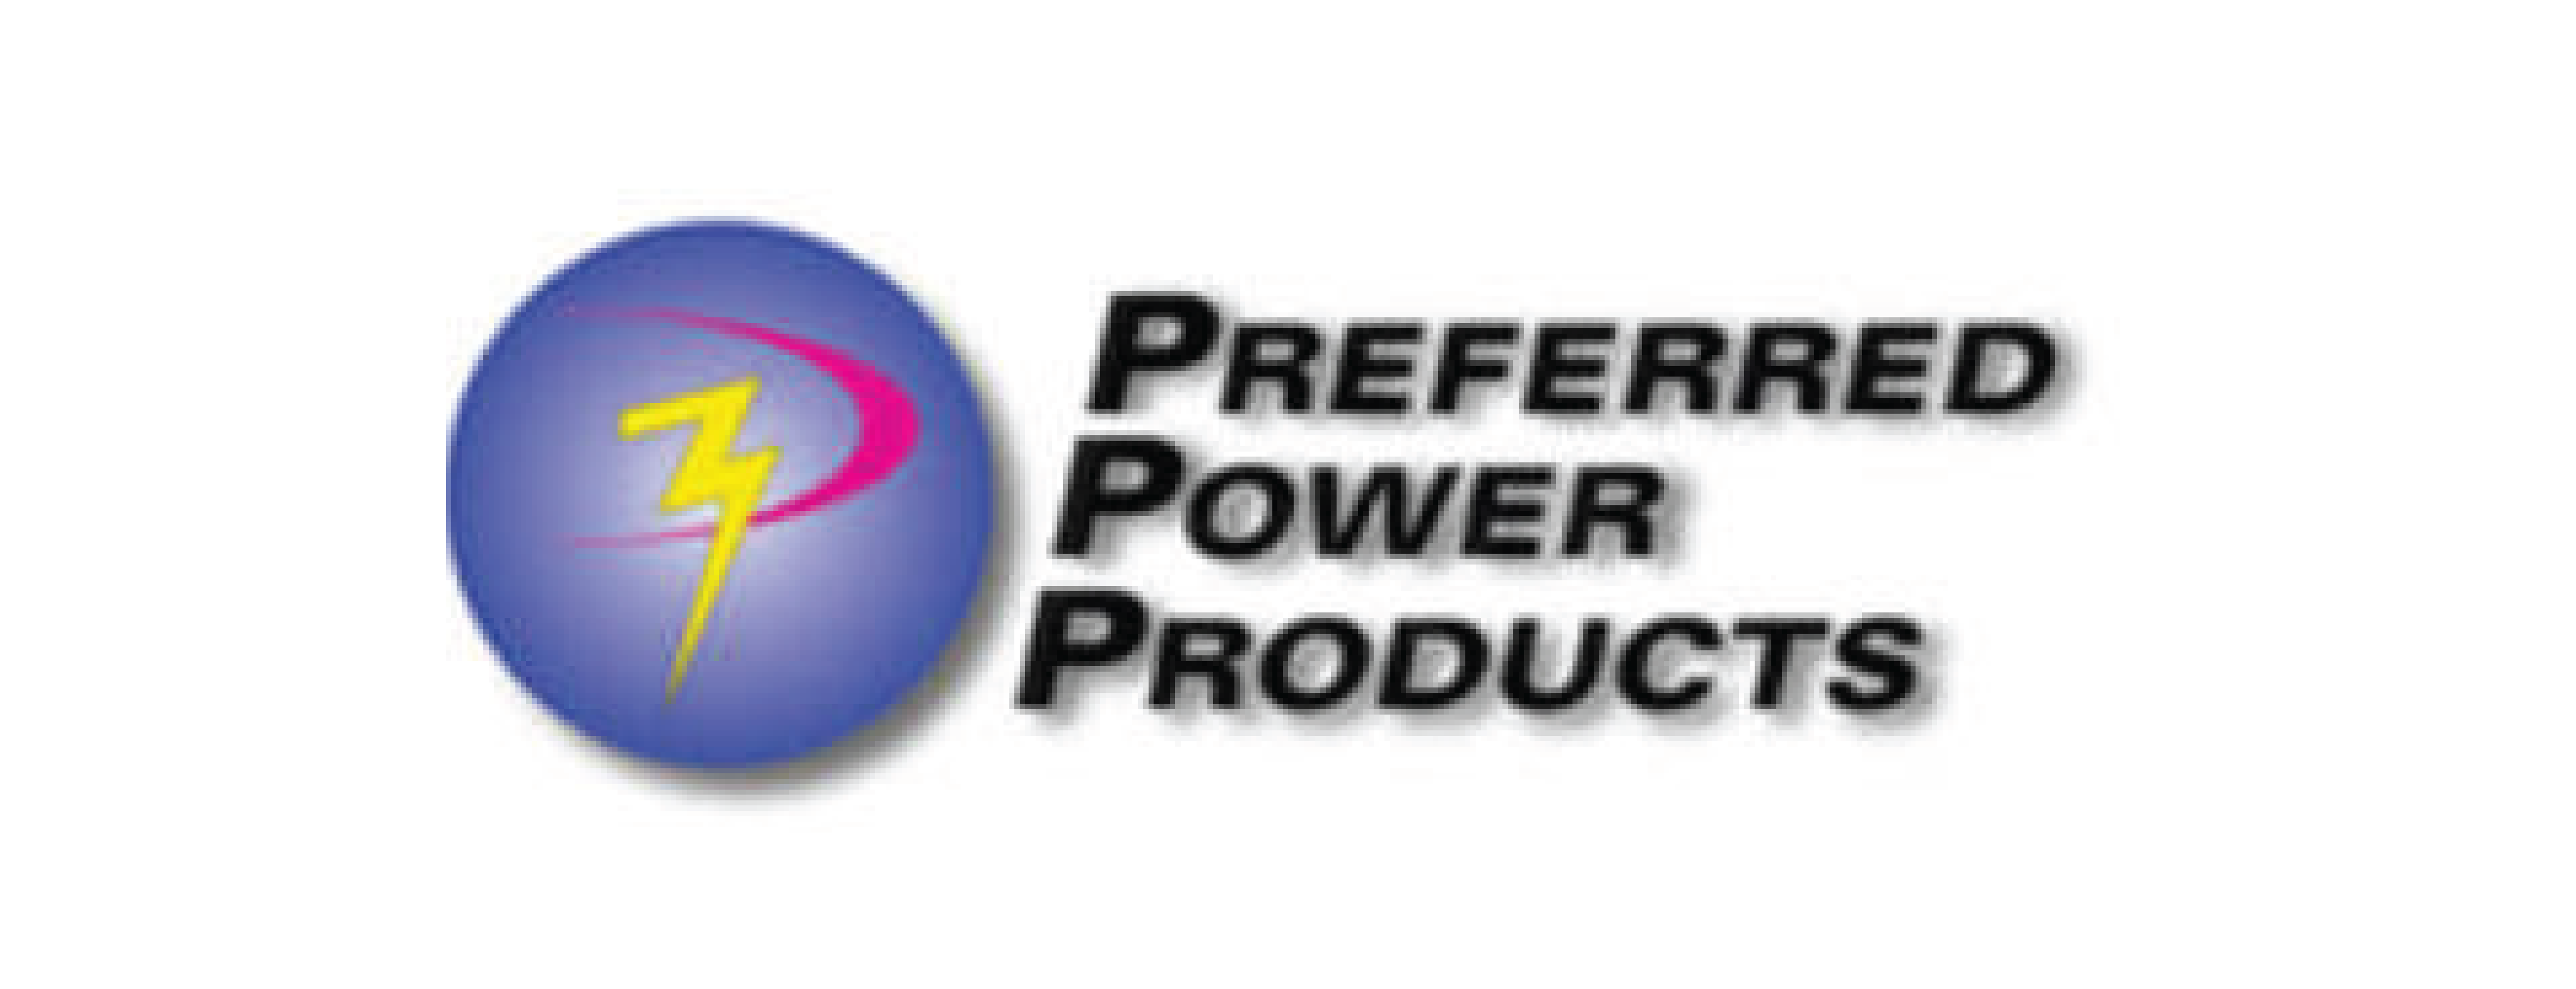 0-Preferred-Power-Products